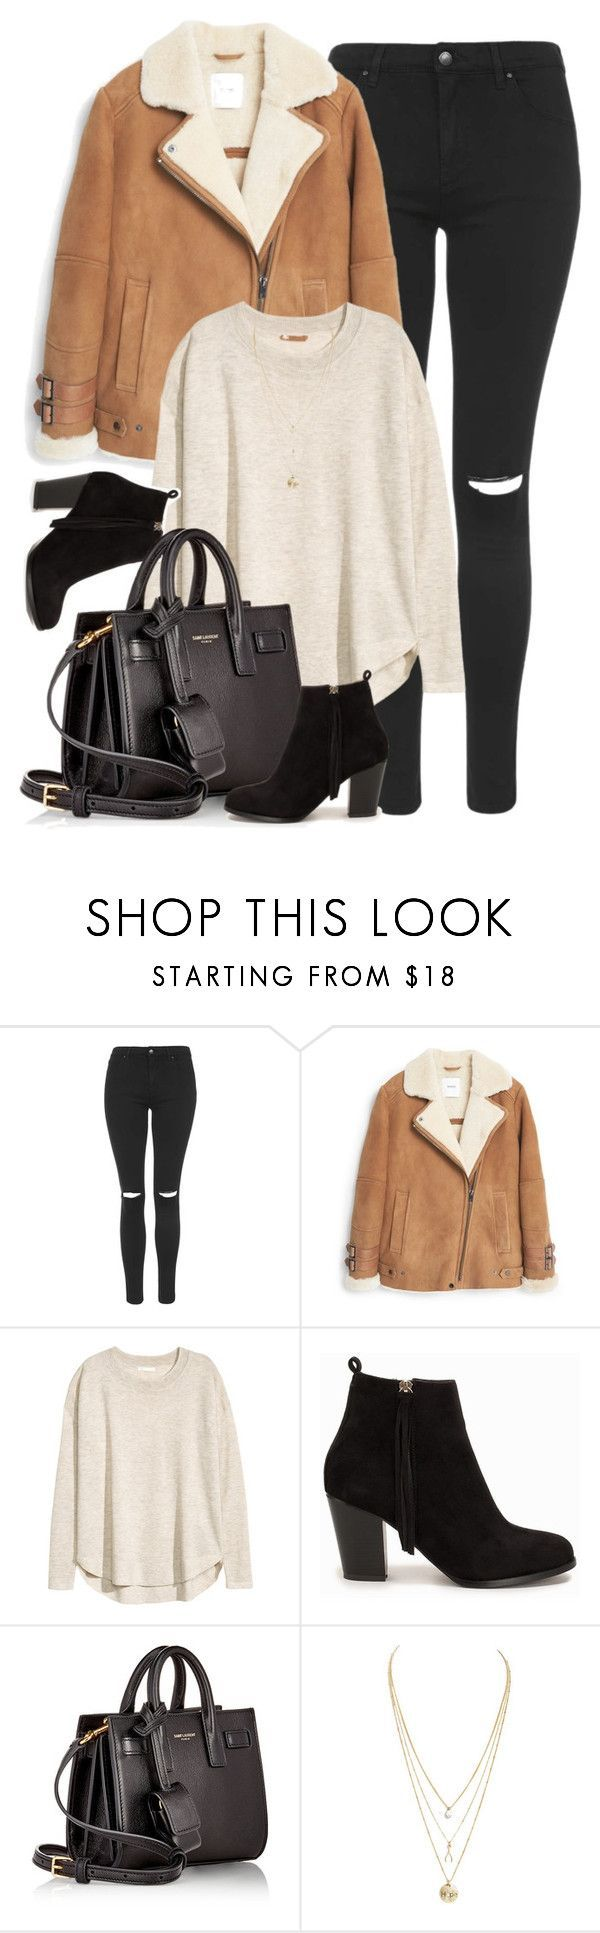 """What I'd Wear"" by monmondefou ❤ liked on Polyvore featuring Topshop, MANGO, H&M, Nly Shoes, Yves Saint Laurent, Fall, black and brown"